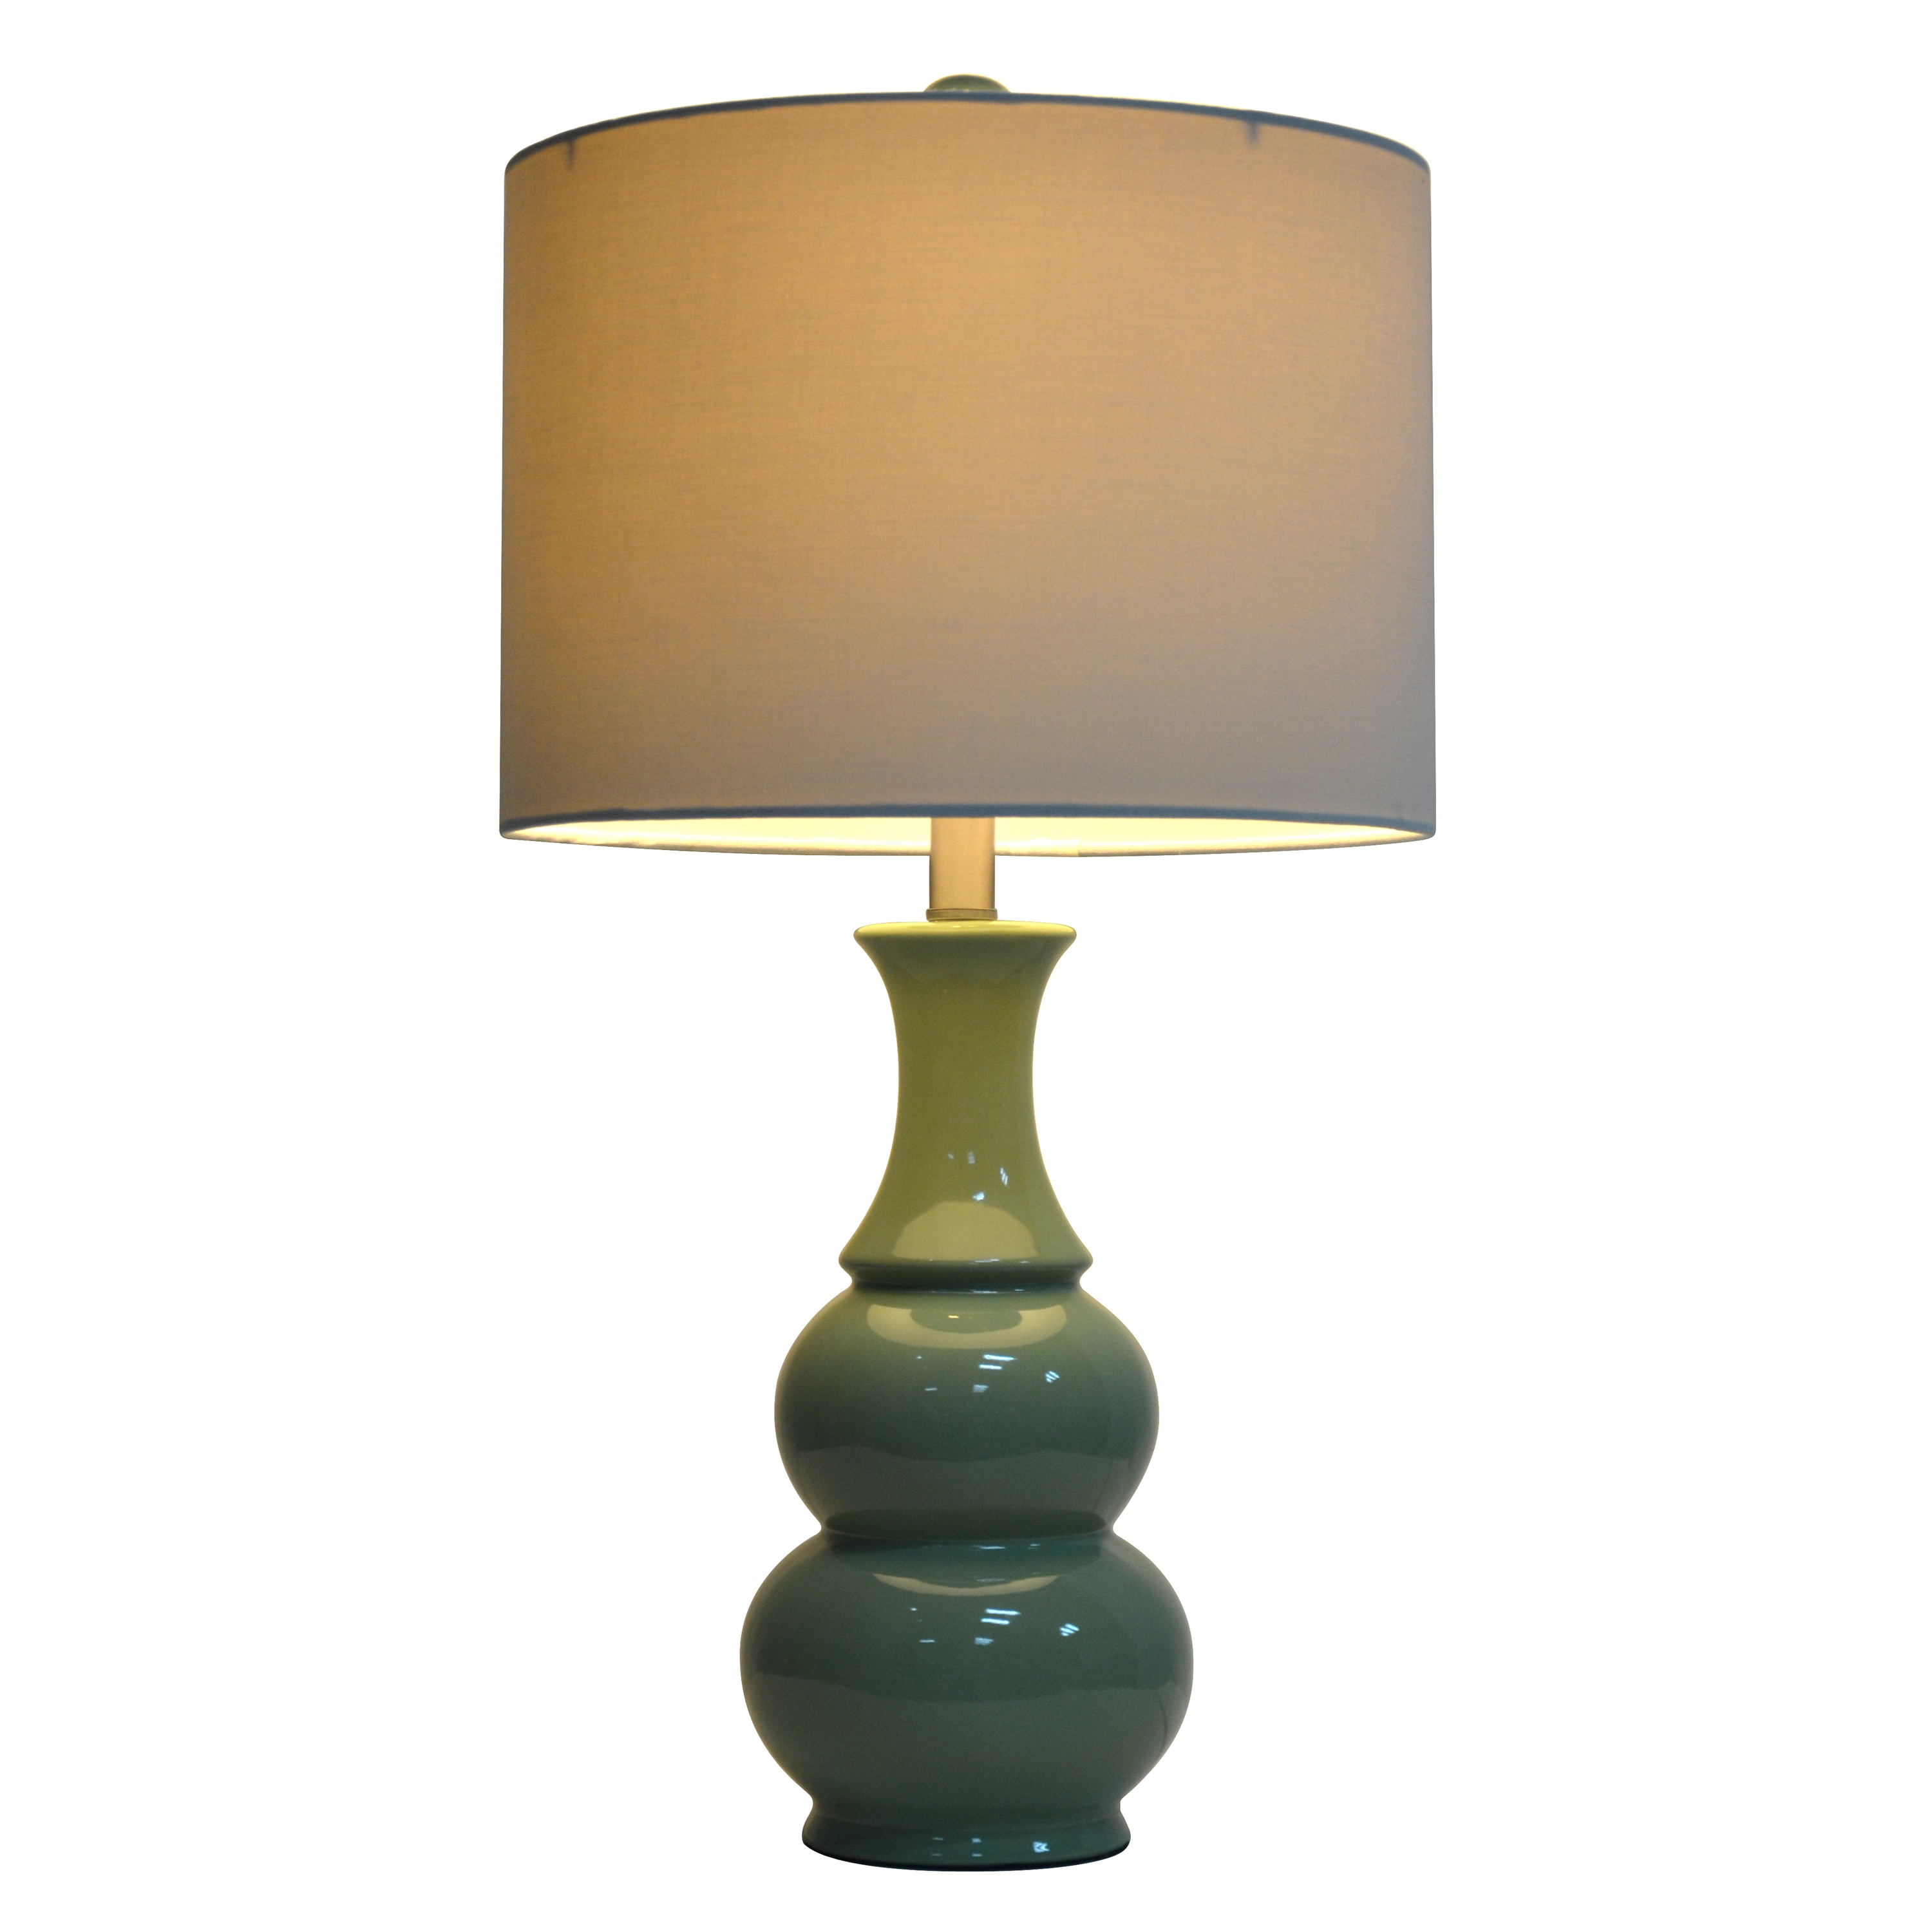 265 inch green ceramic table lamp free shipping today overstock 265 inch green ceramic table lamp free shipping today overstock 17197465 aloadofball Images